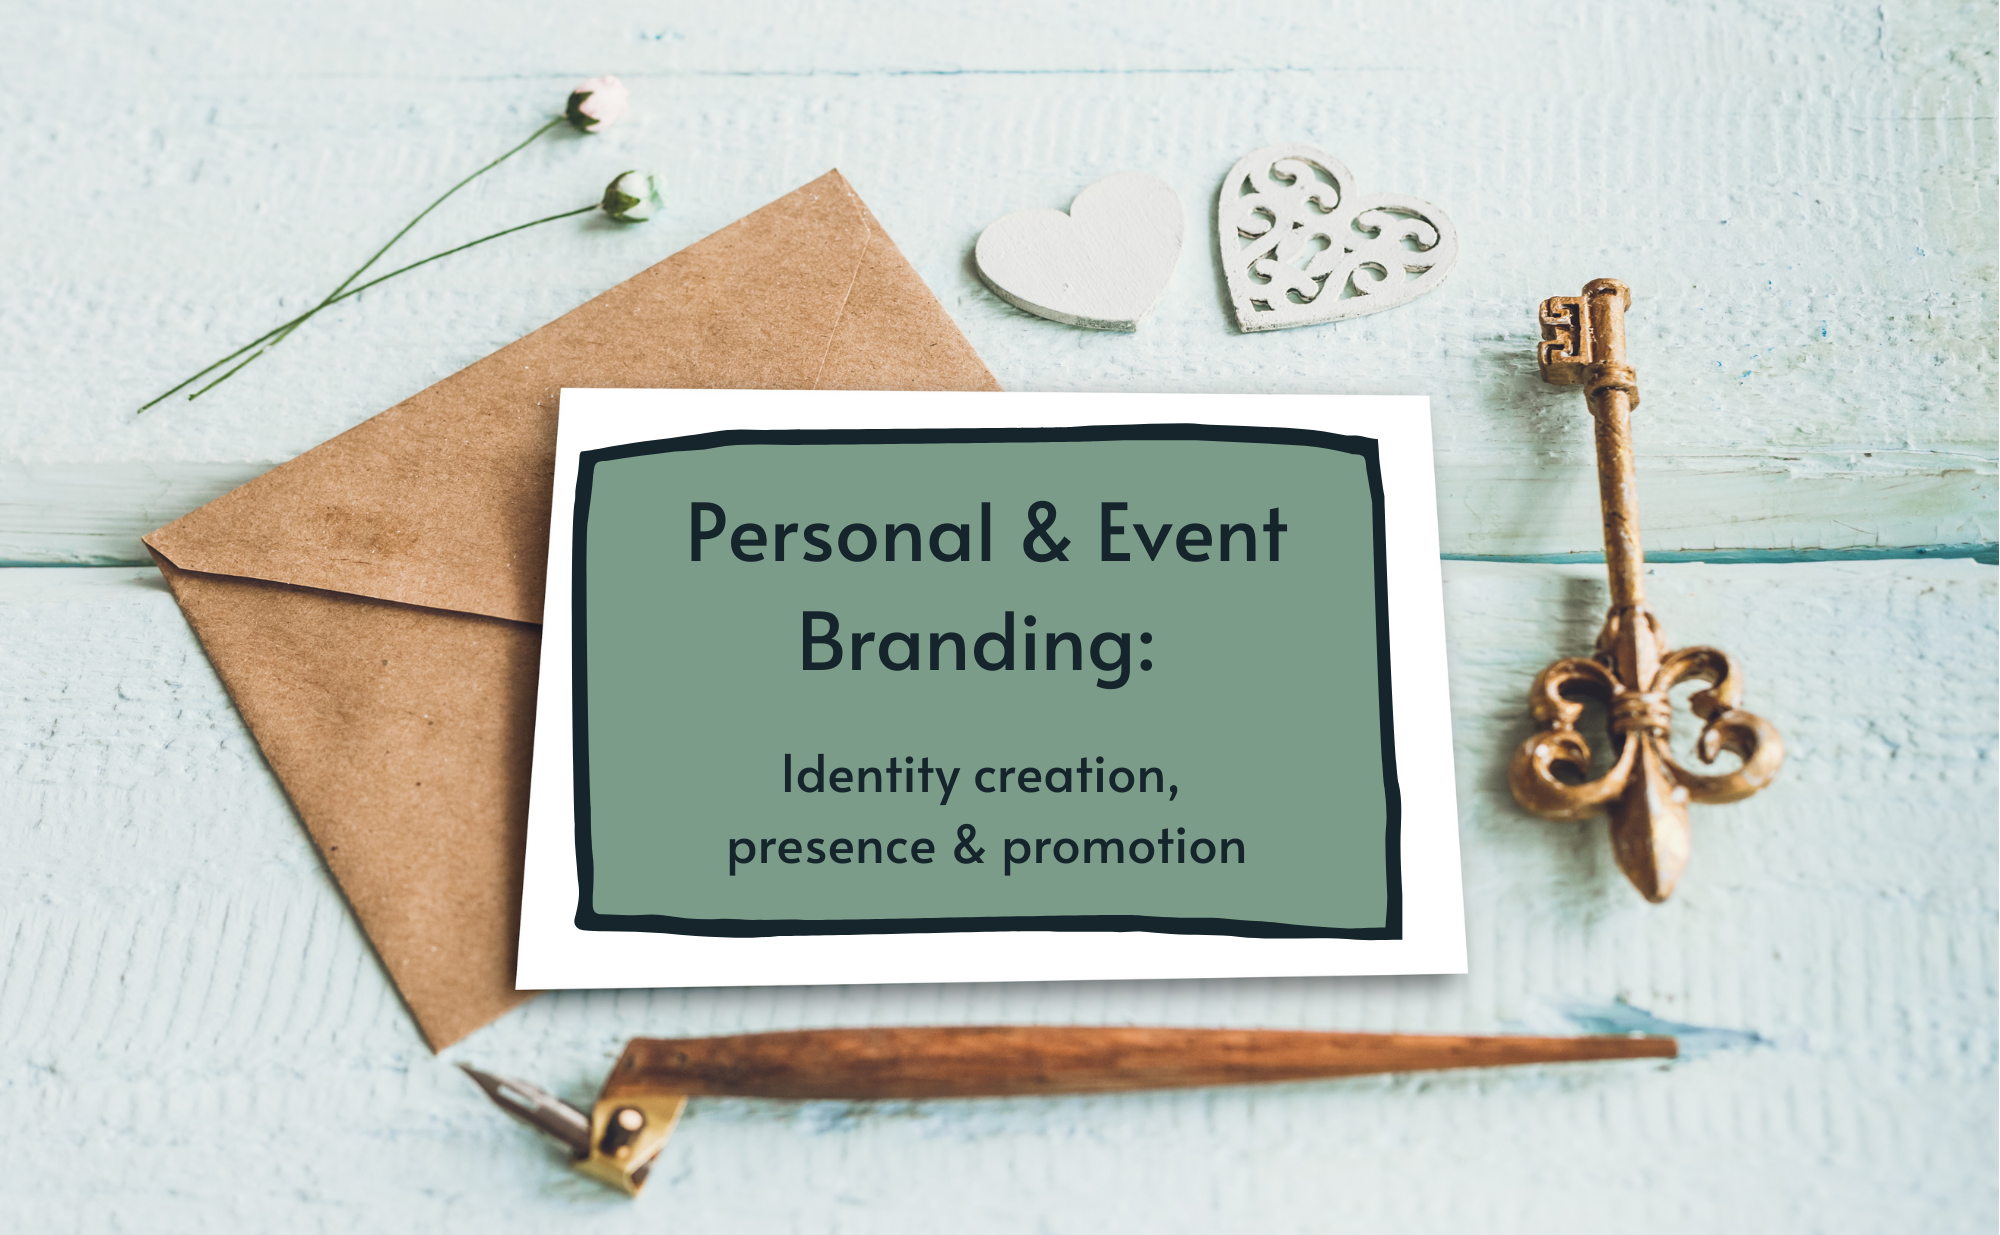 Personal & Event Branding